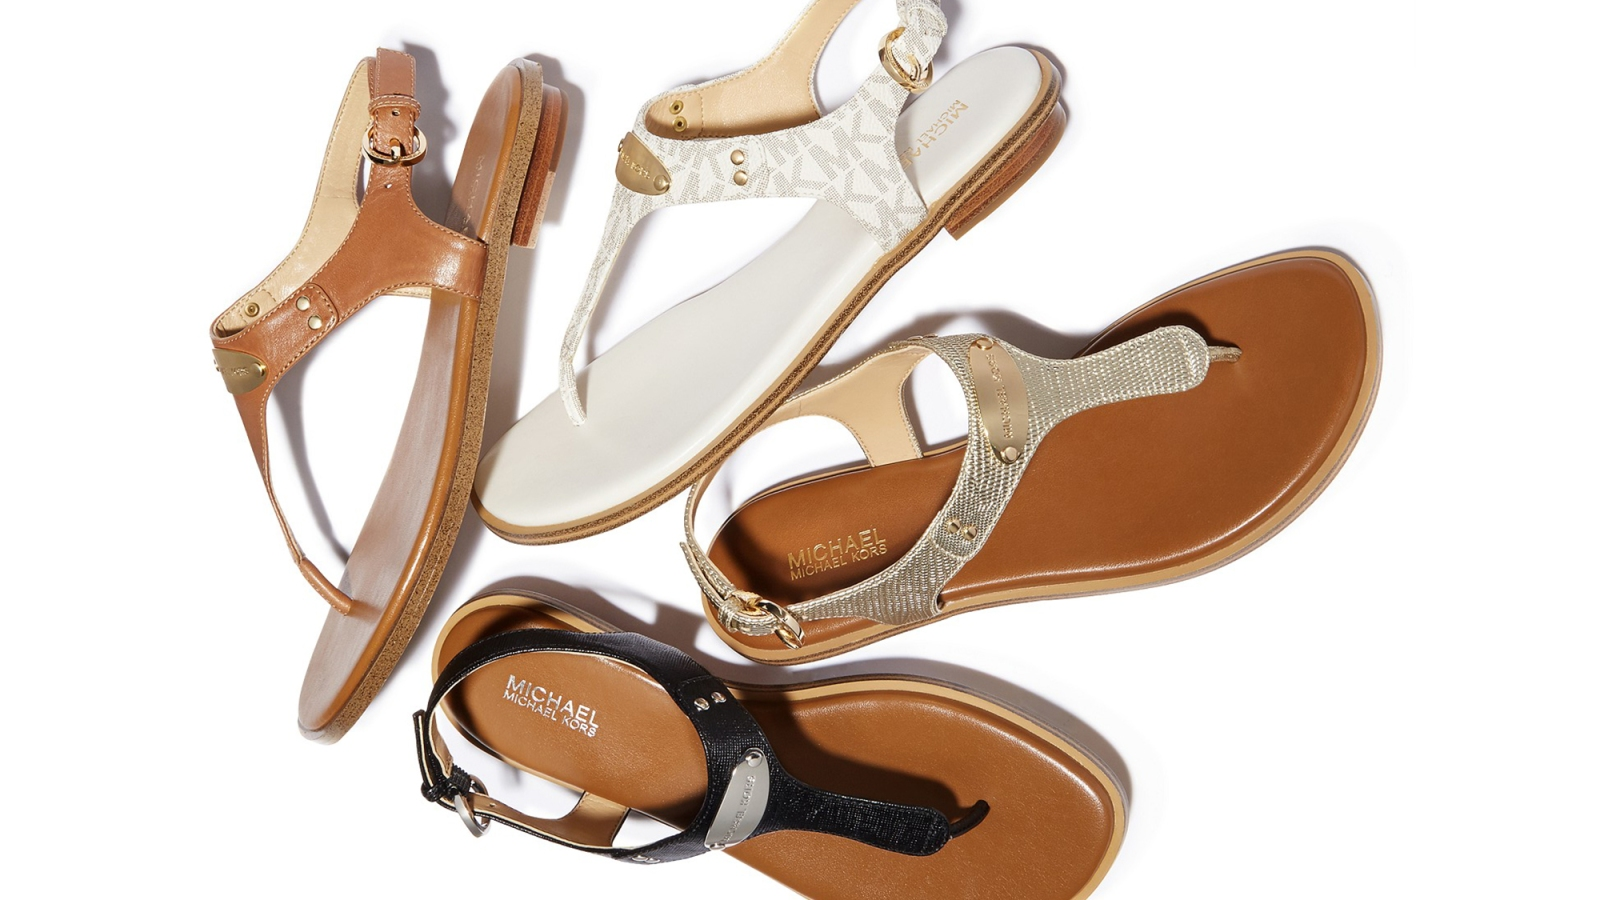 491b4b7c9a7 Make the Sidewalk Your Runway in These Michael Kors Sandals